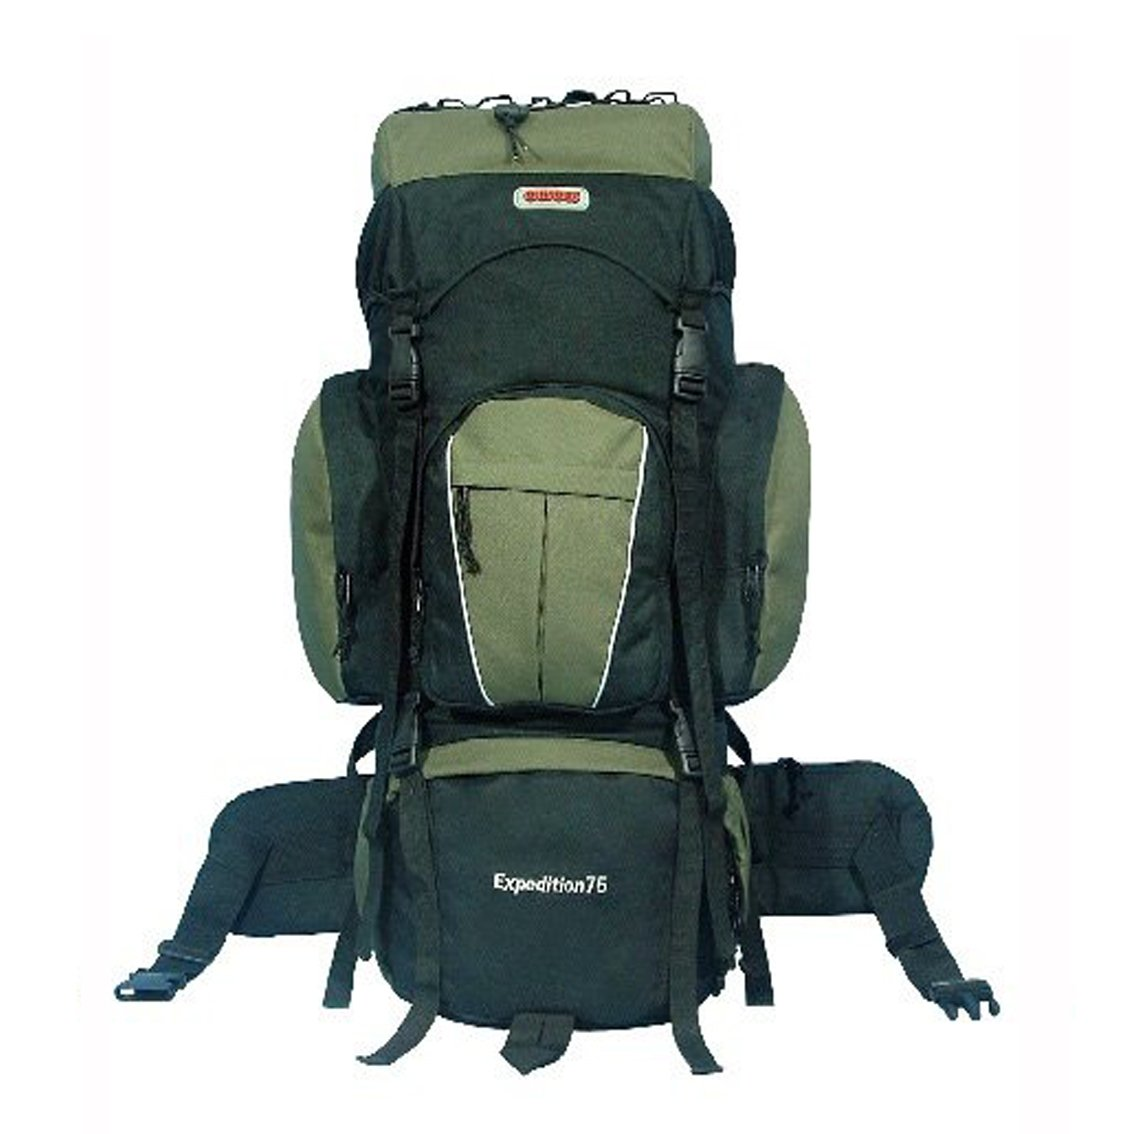 Amazon.com   NEW CUSCUS 75+10L 5400ci Internal Frame Camping Hiking Travel  Backpack - Green   Cucus Backpack   Sports   Outdoors b5a2f0bc1356e